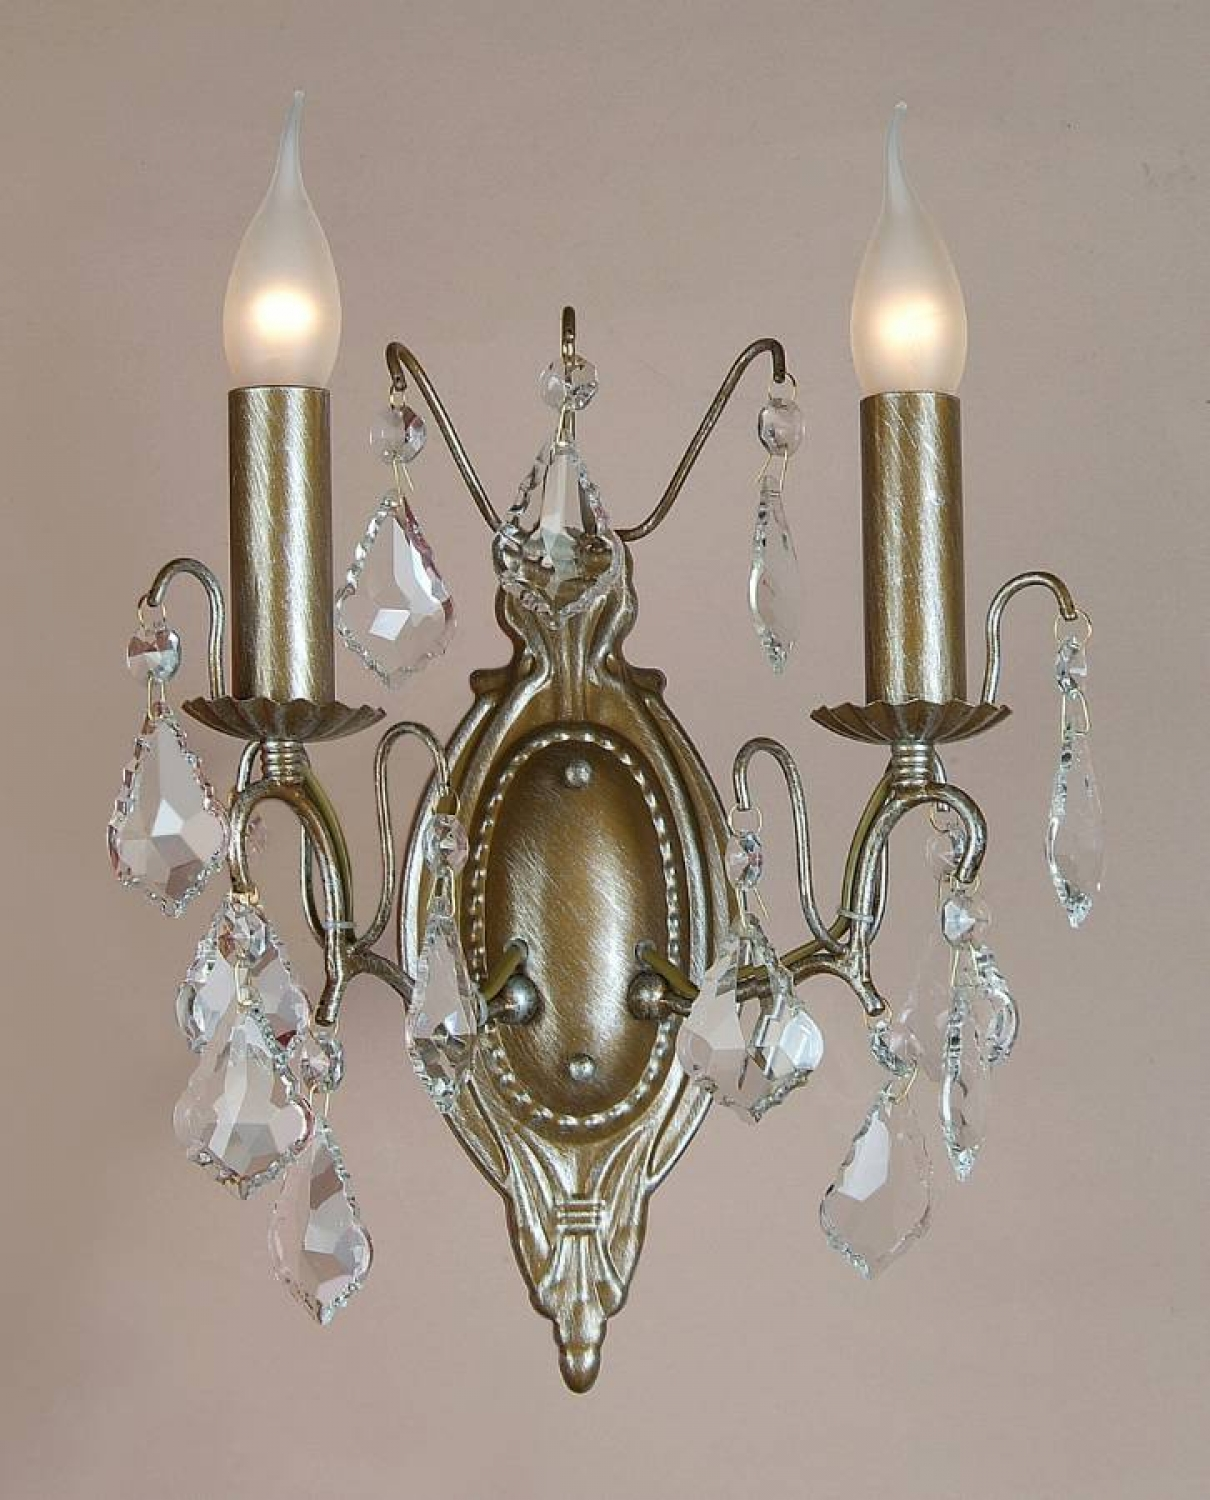 Double wall sconce in gold